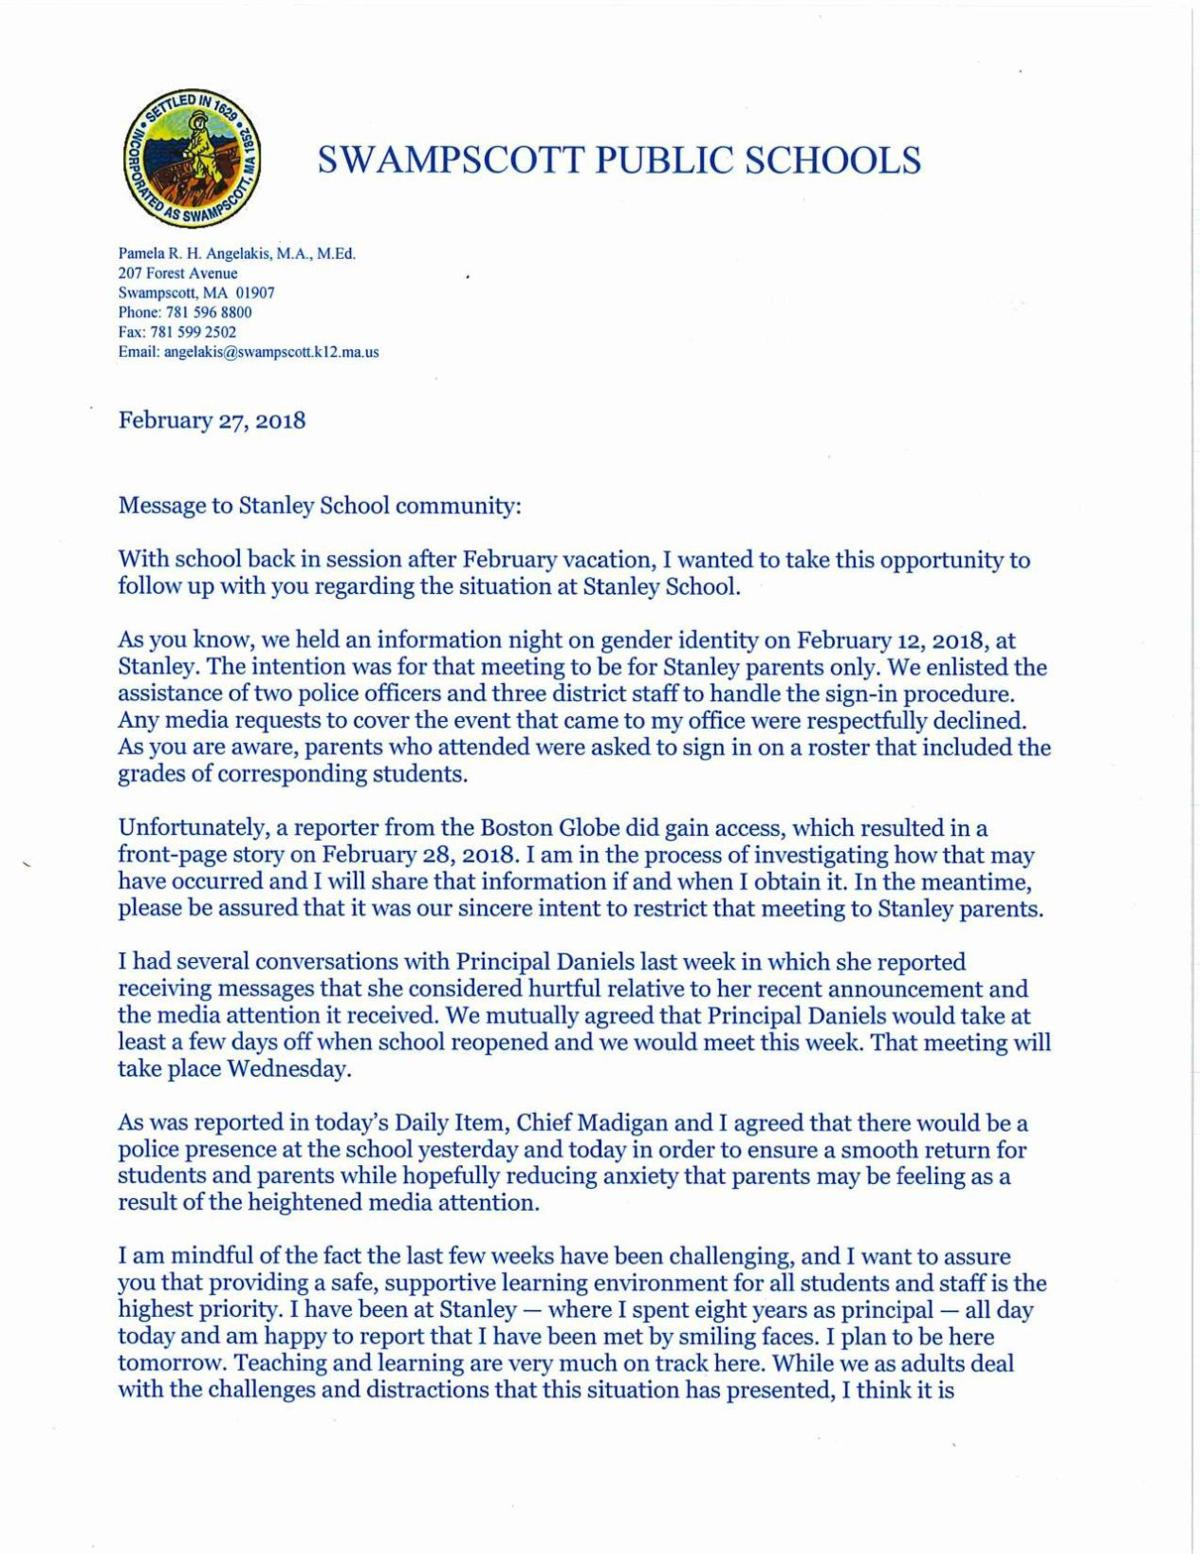 Letter from Swampscott principal to Stanley parents